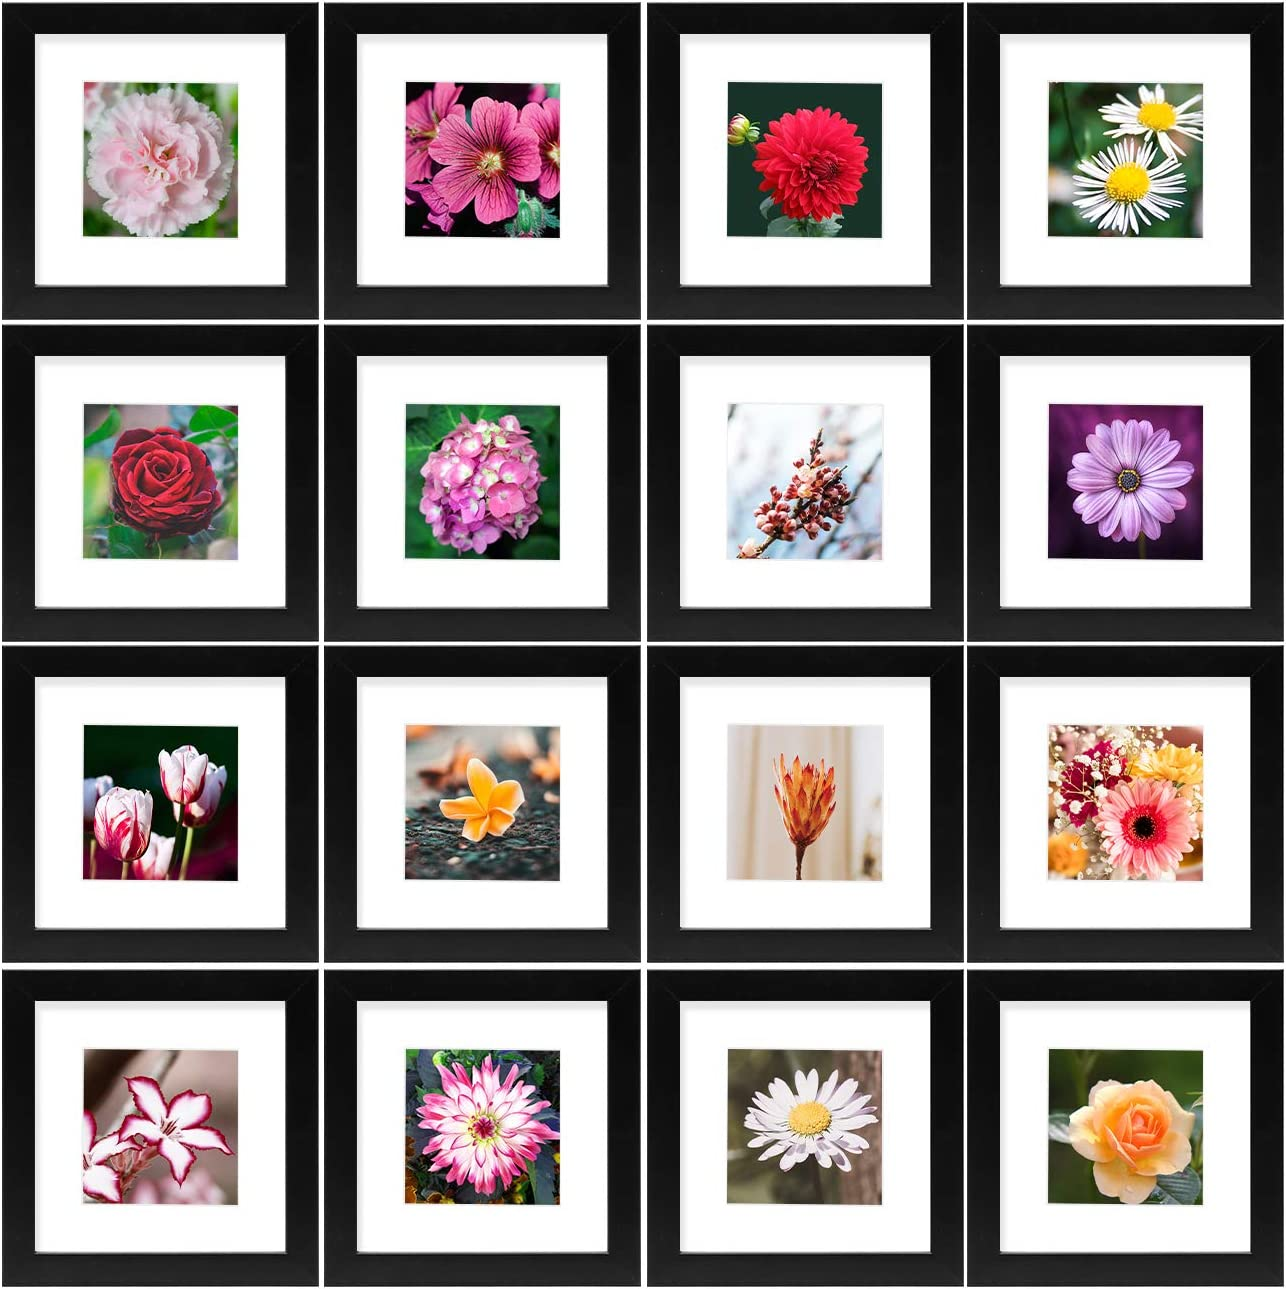 Golden State Art, Smartphone Instagram Frames Collection, Set of 16, 6x6-inch Square Photo Wood Frames with White Photo Mat & Real Glass for 4x4 Photo, Black